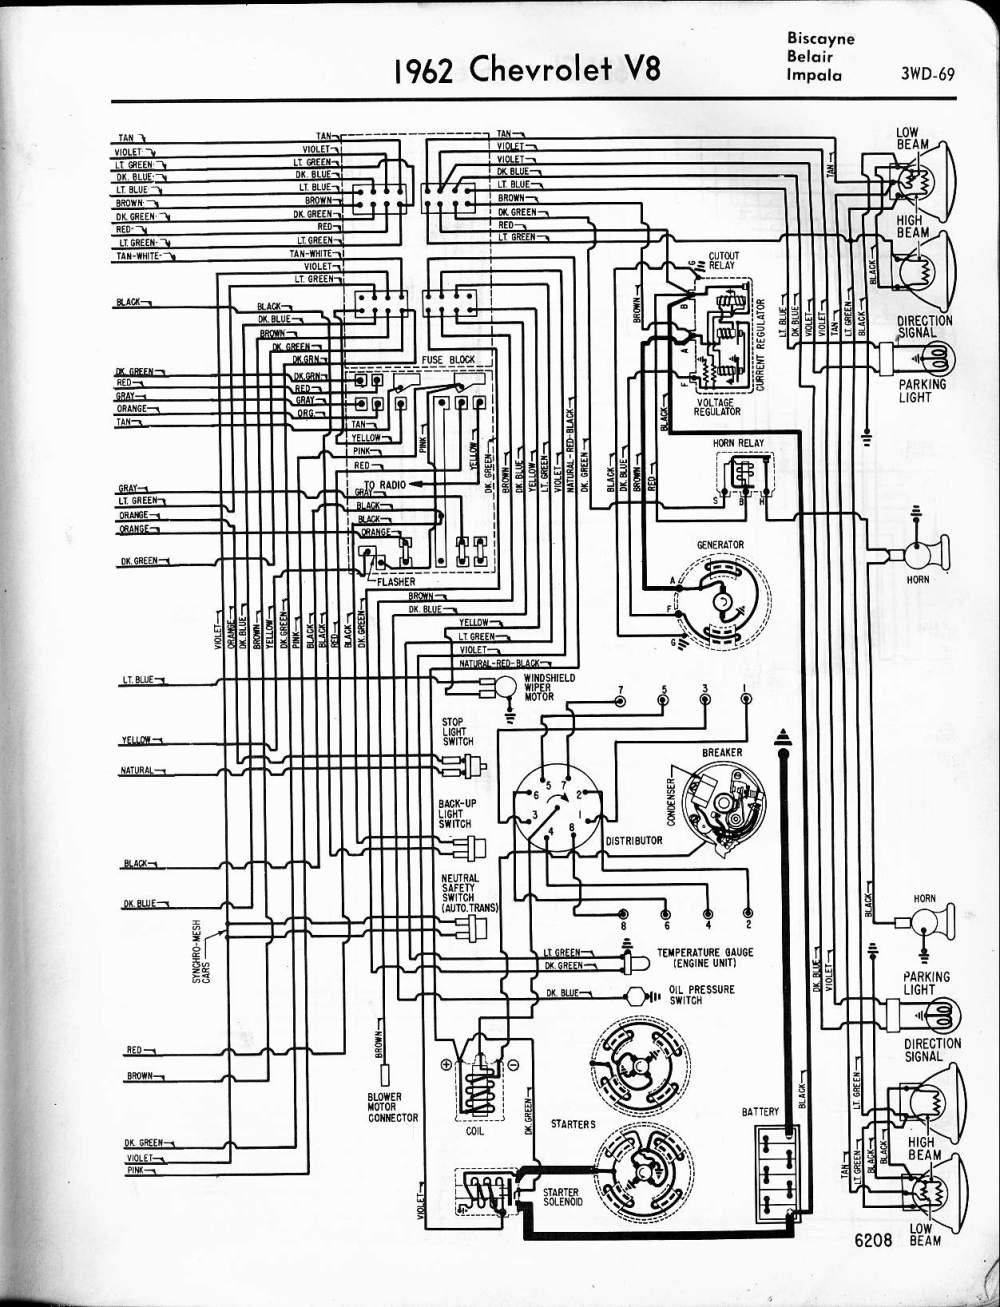 medium resolution of windshield wiper wiring diagram for 2003 chevy impala schematics rh parntesis co 2006 pontiac g6 fuse